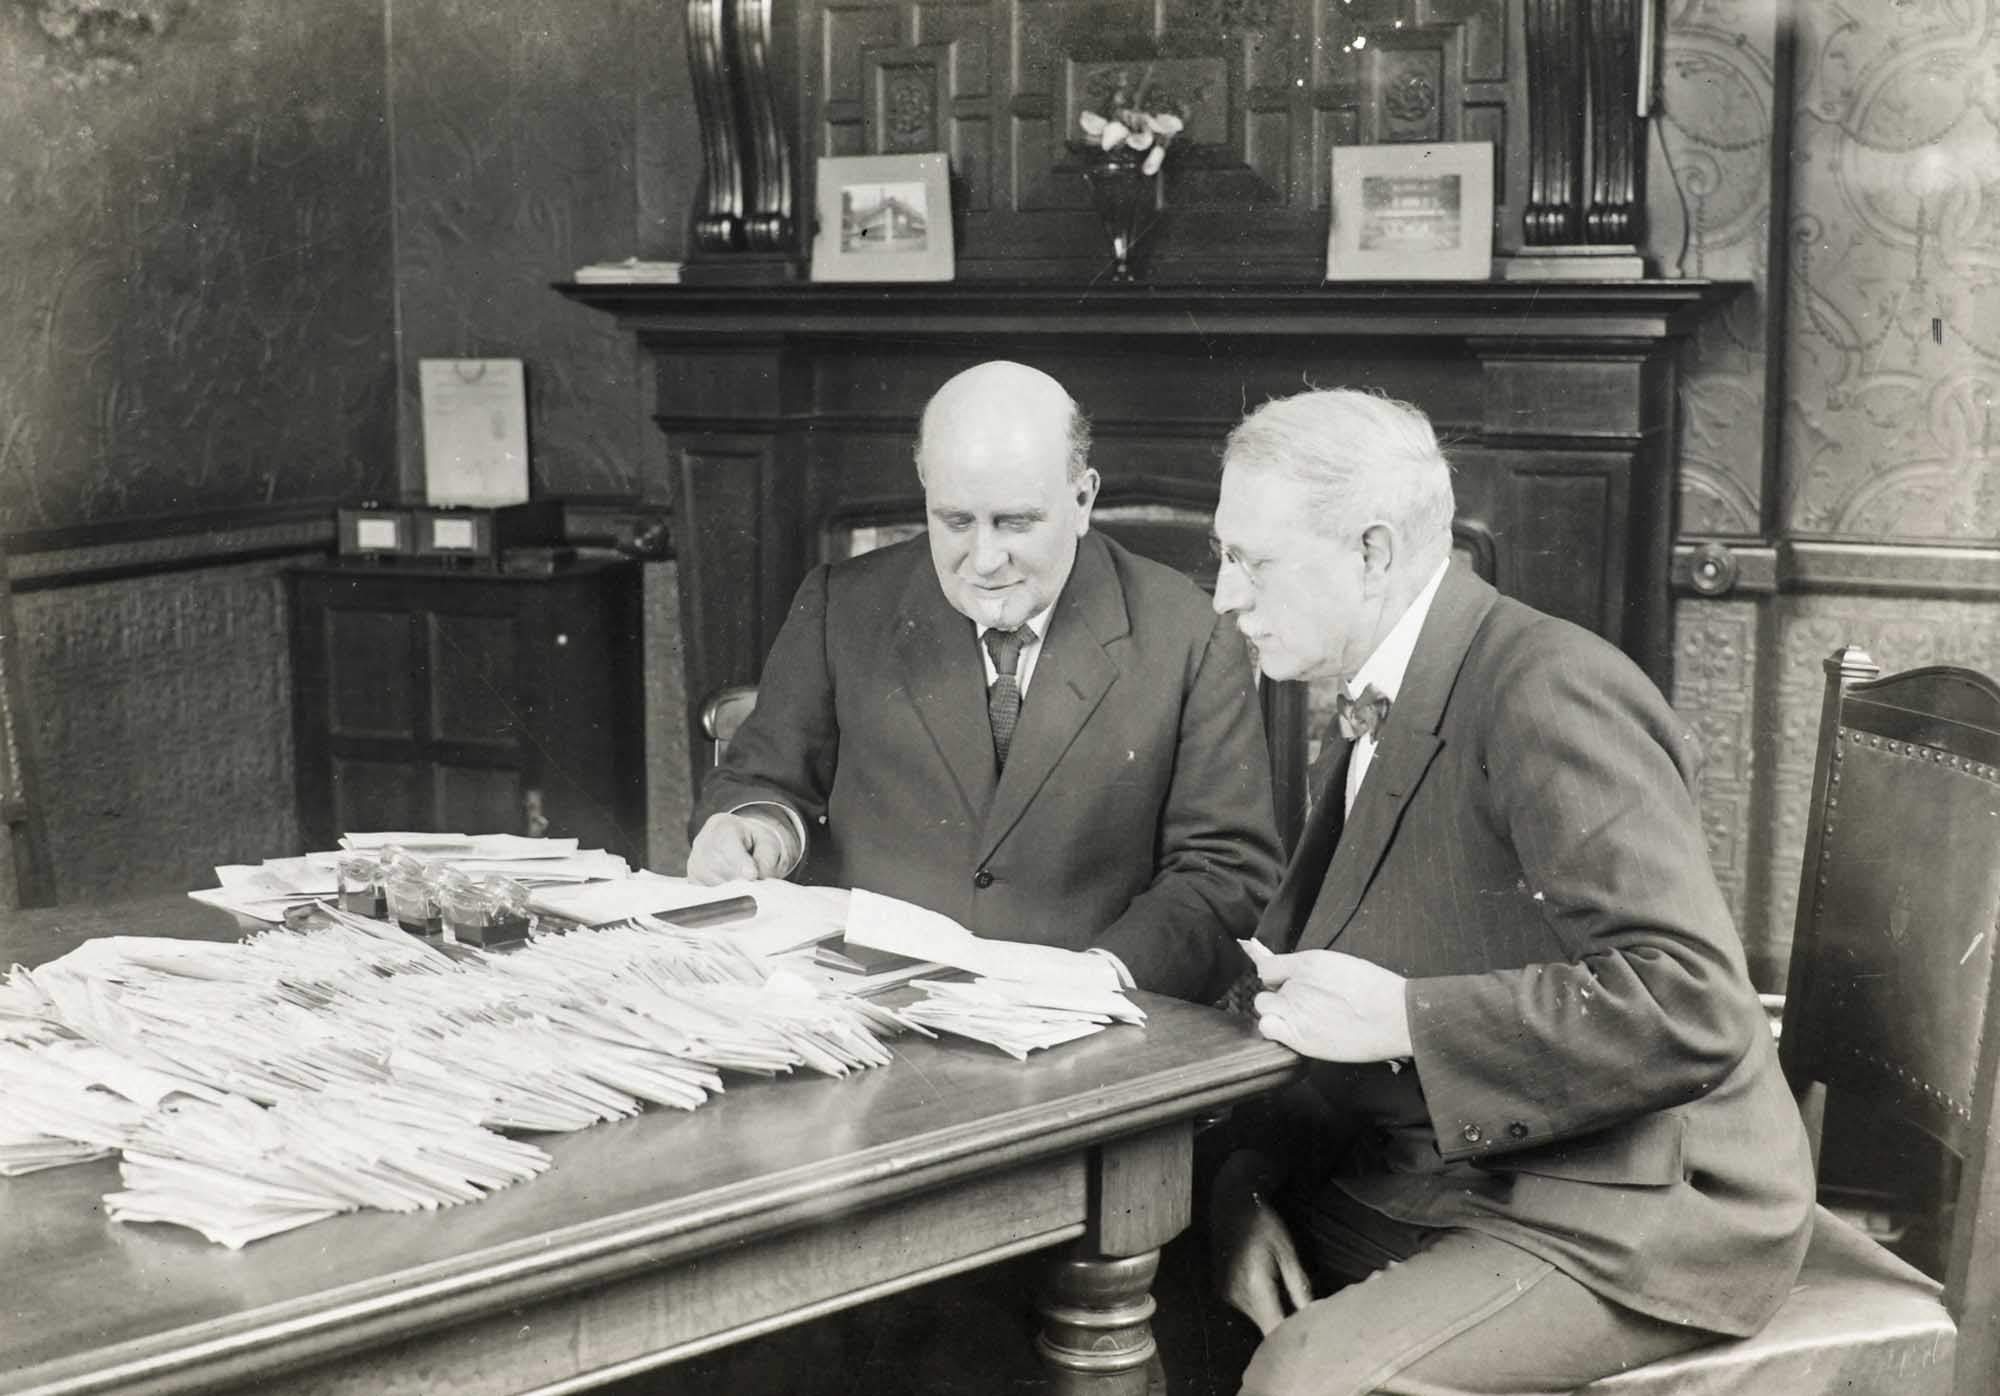 Amos Sheriff during his tenure as Lord Mayor of Leicester, in his office at the Town Hall - Leicestershire Record Office